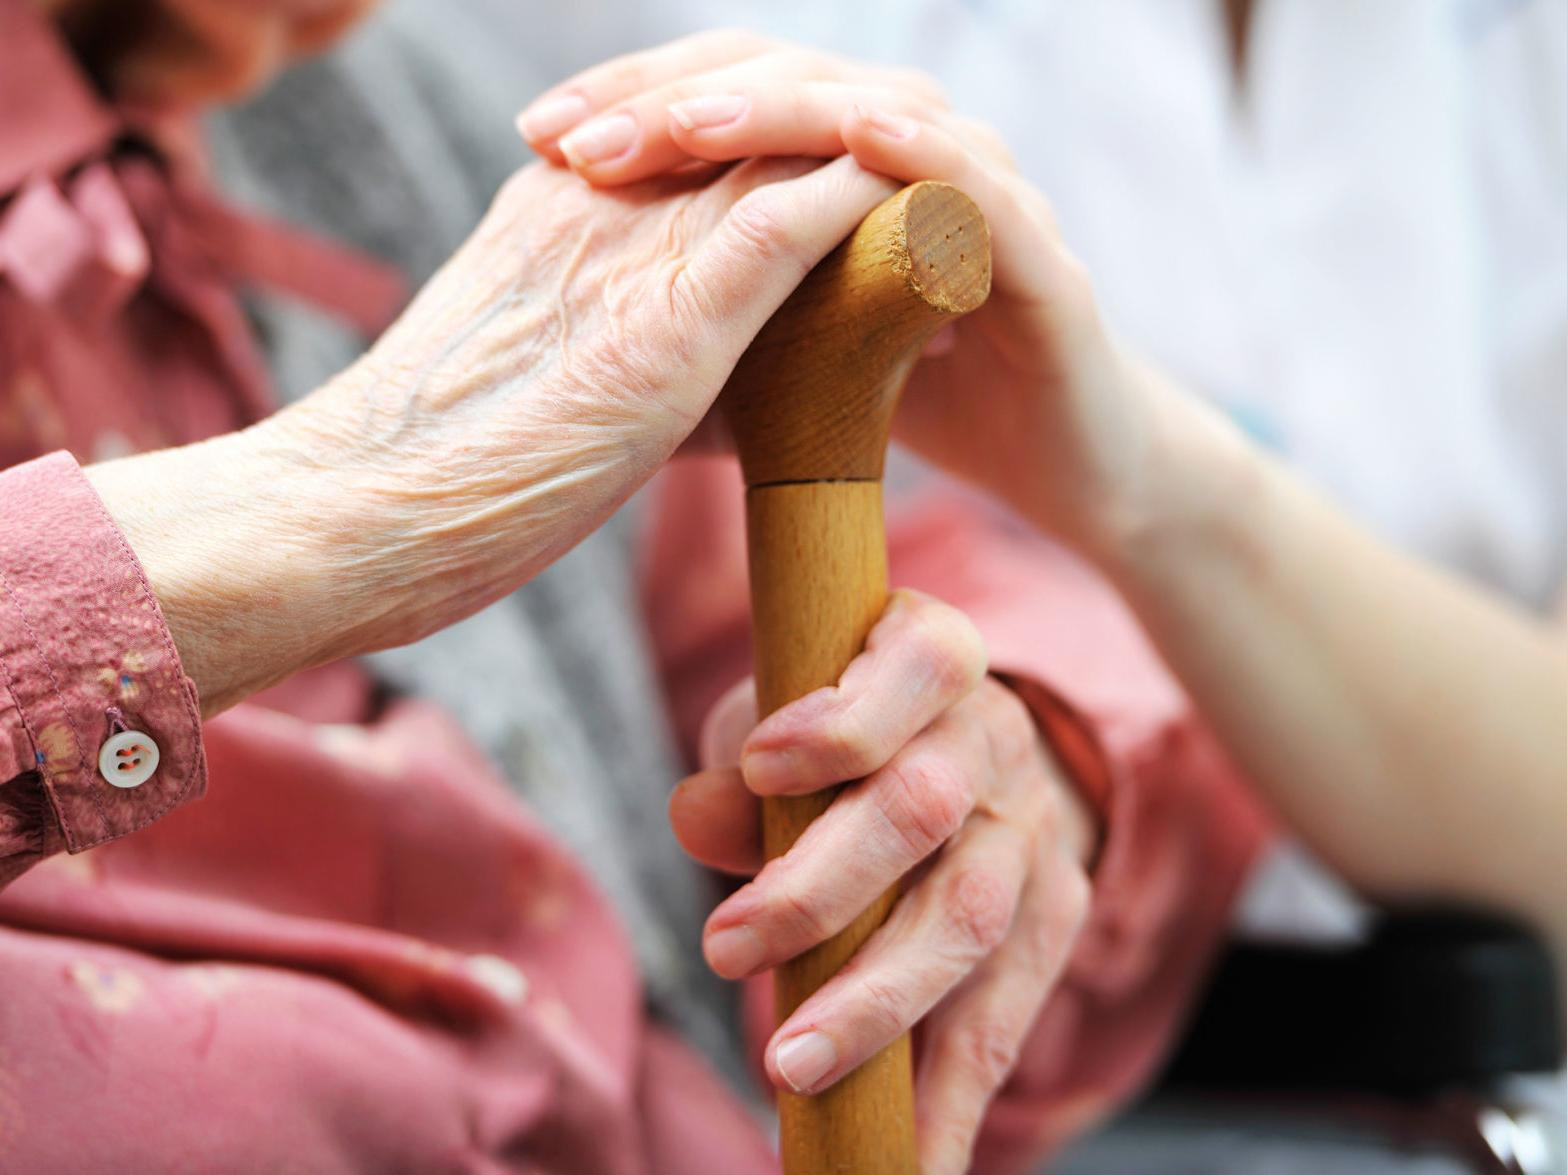 Caregivers should steer loved ones to activities meaningful to them to keep them actively engaged